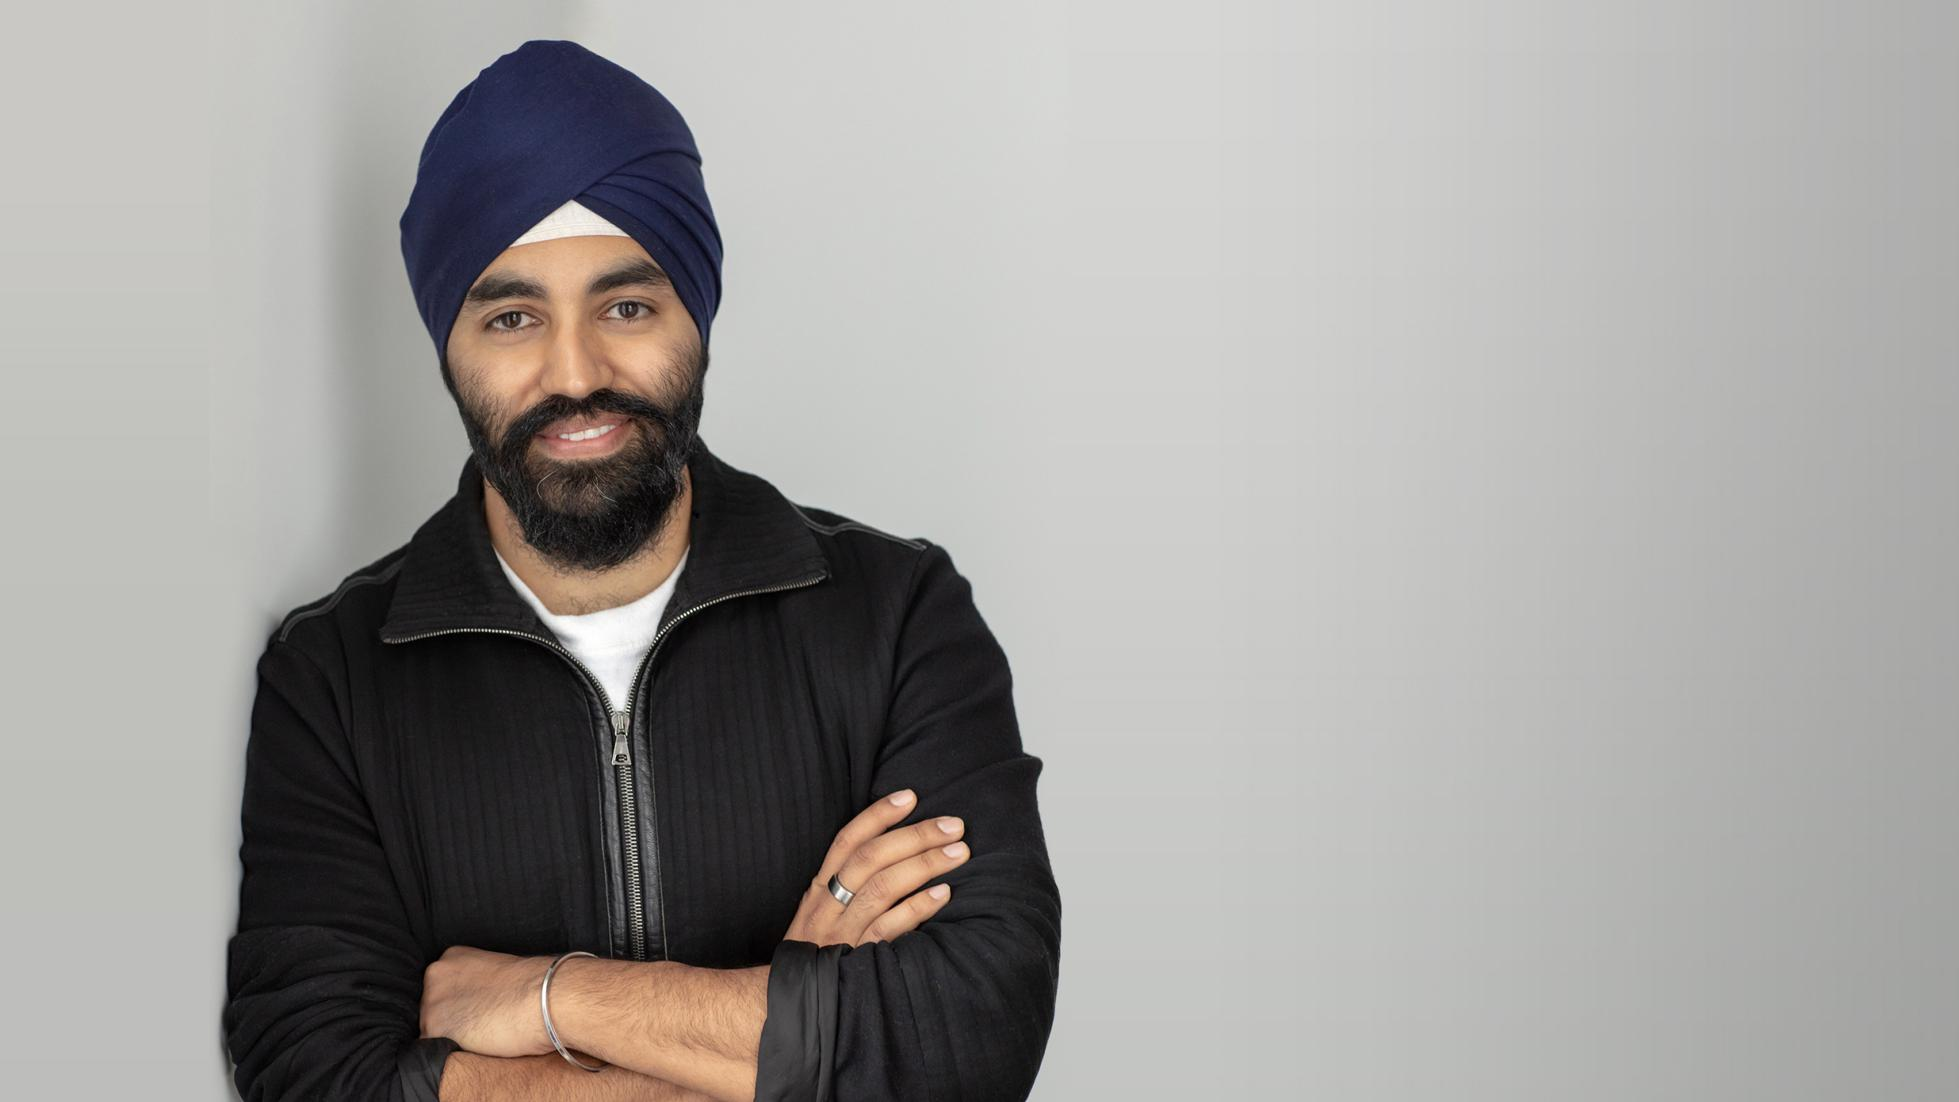 Oura CEO Harpreet Singh Rai says the pandemic boosted demand for wearable health trackers.